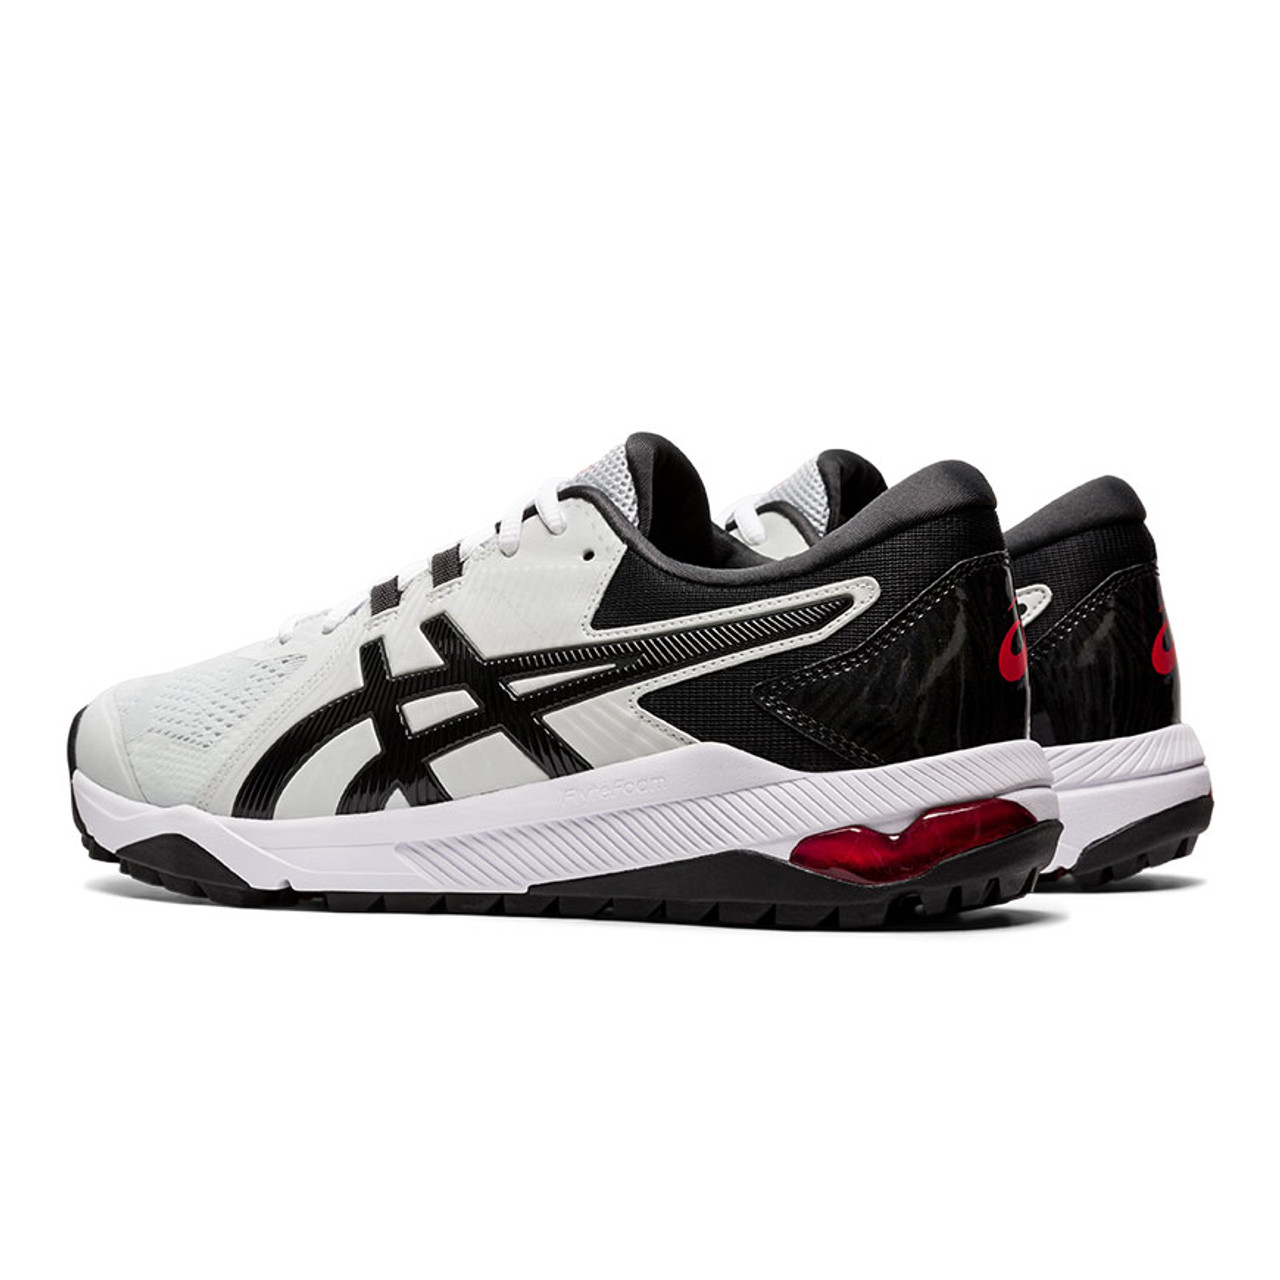 Asics Gel-Course Glide Golf Shoes - Gray / Black / Red